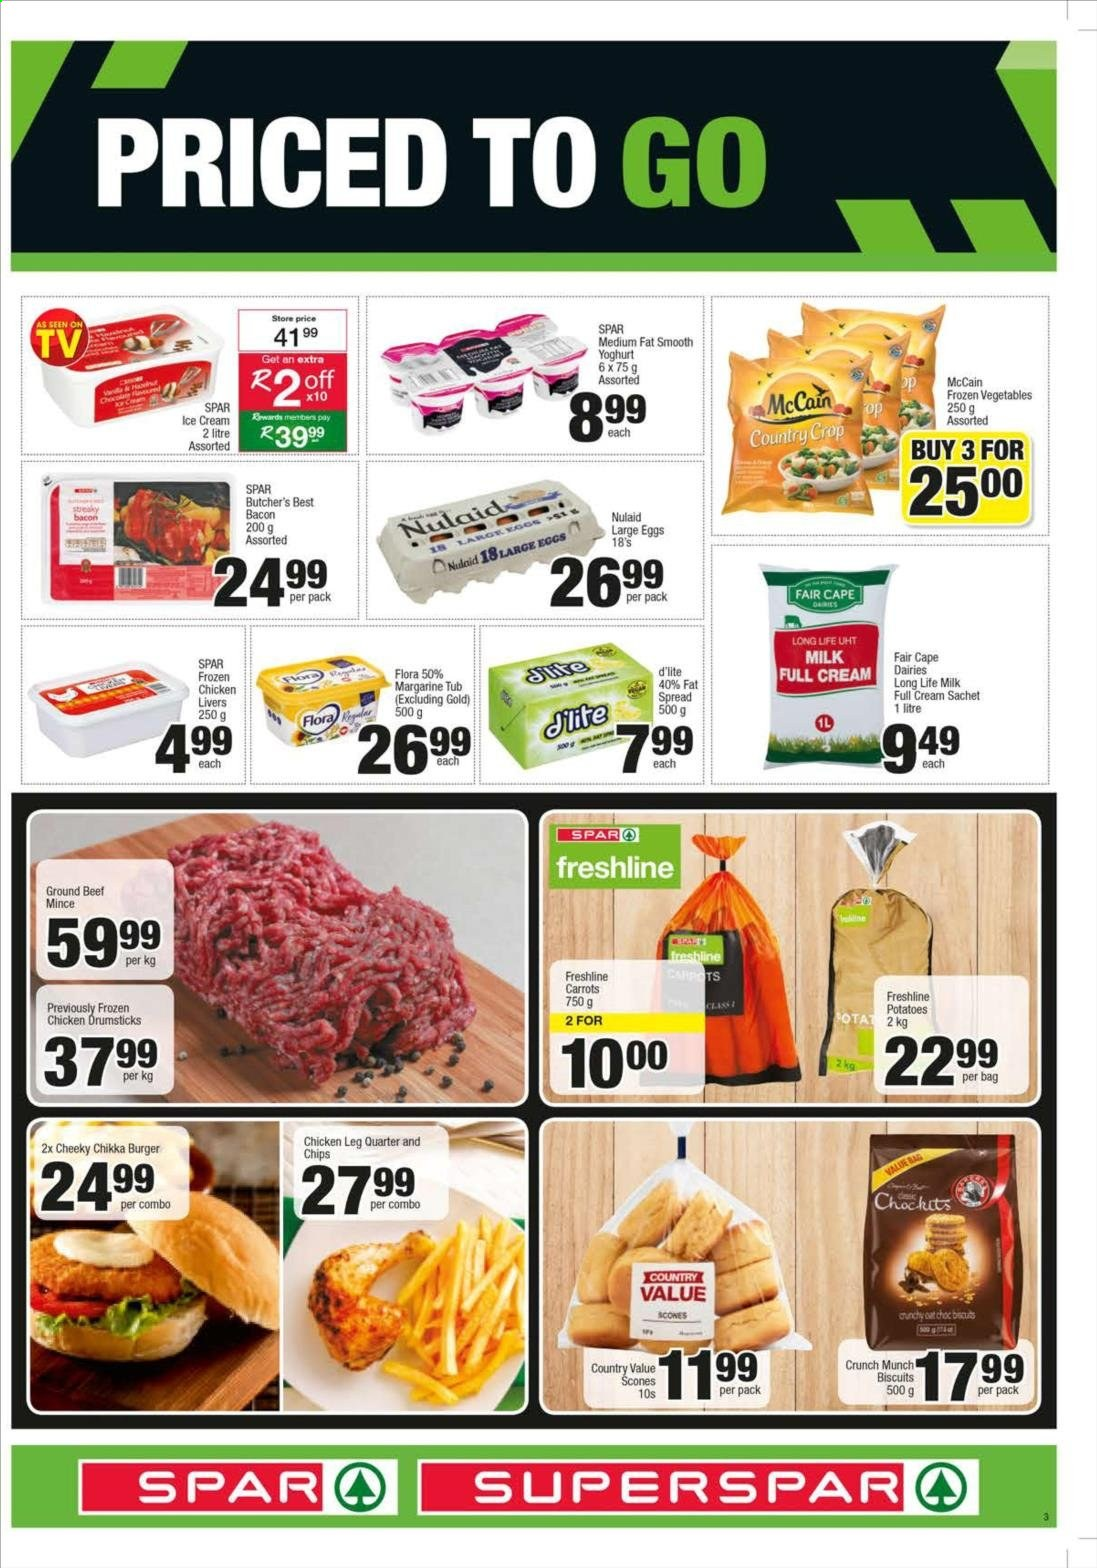 SPAR catalogue  - 02.03.2020 - 02.23.2020. Page 3.